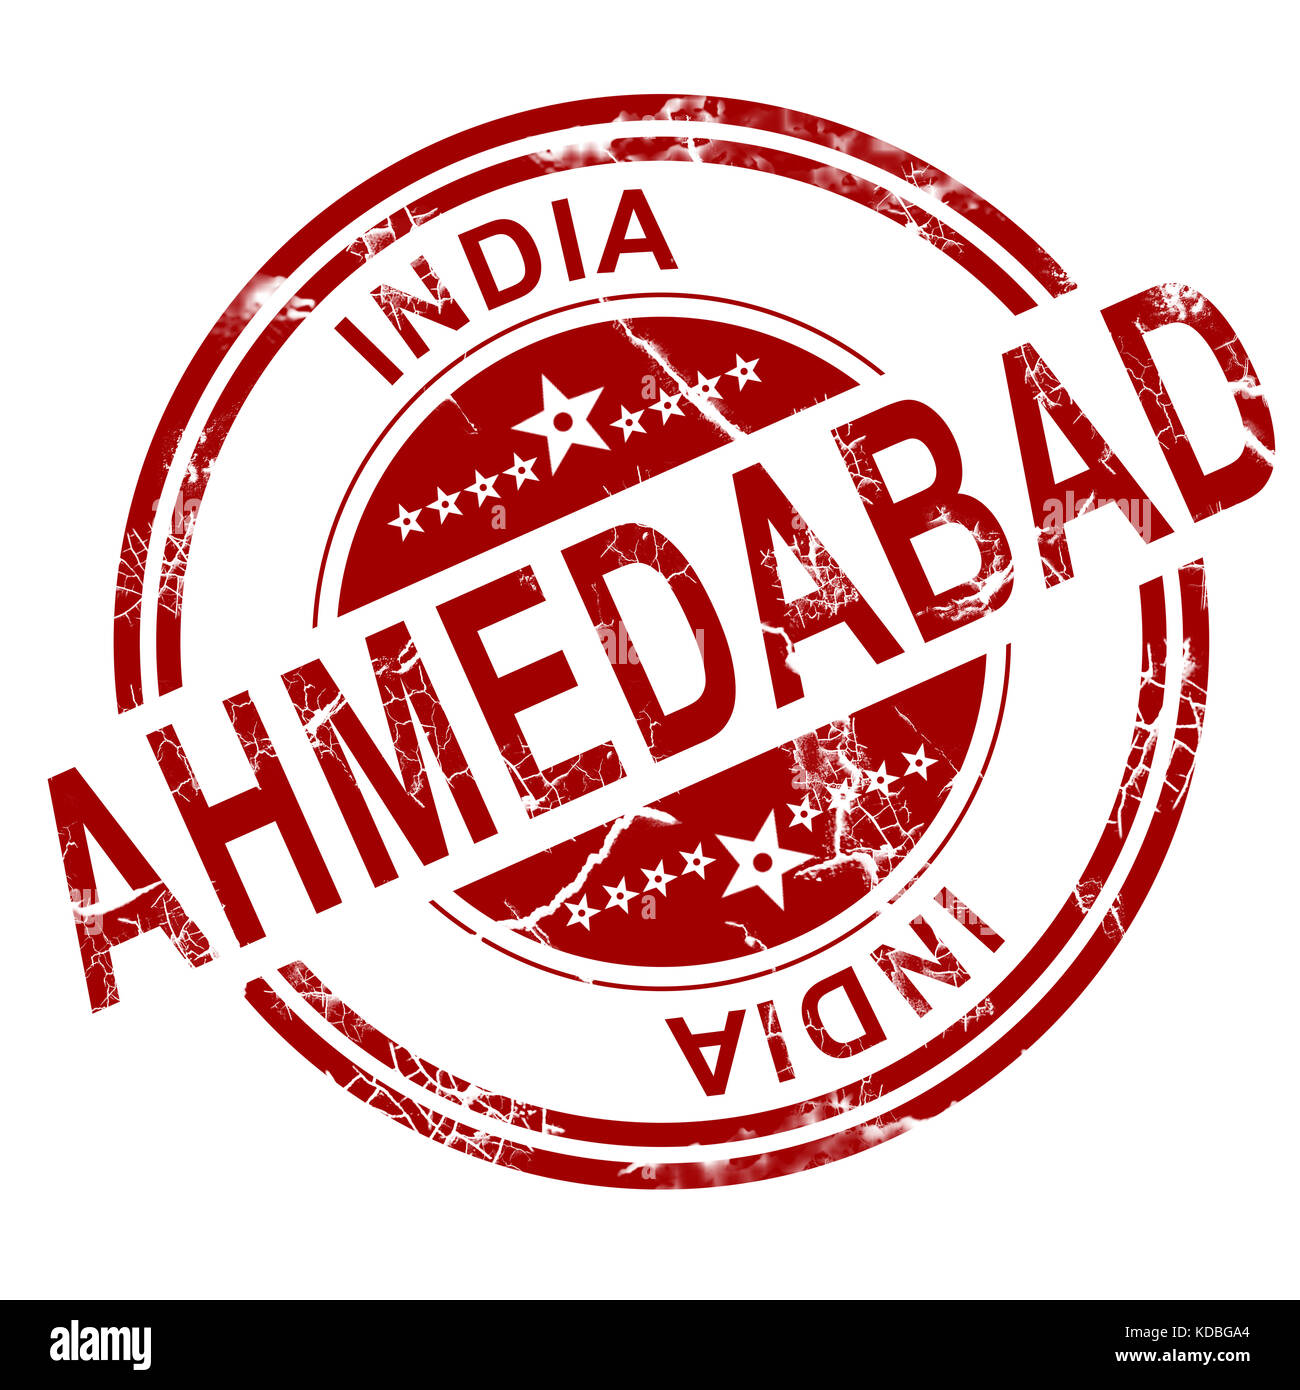 Red Ahmedabad stamp with white background, 3D rendering - Stock Image